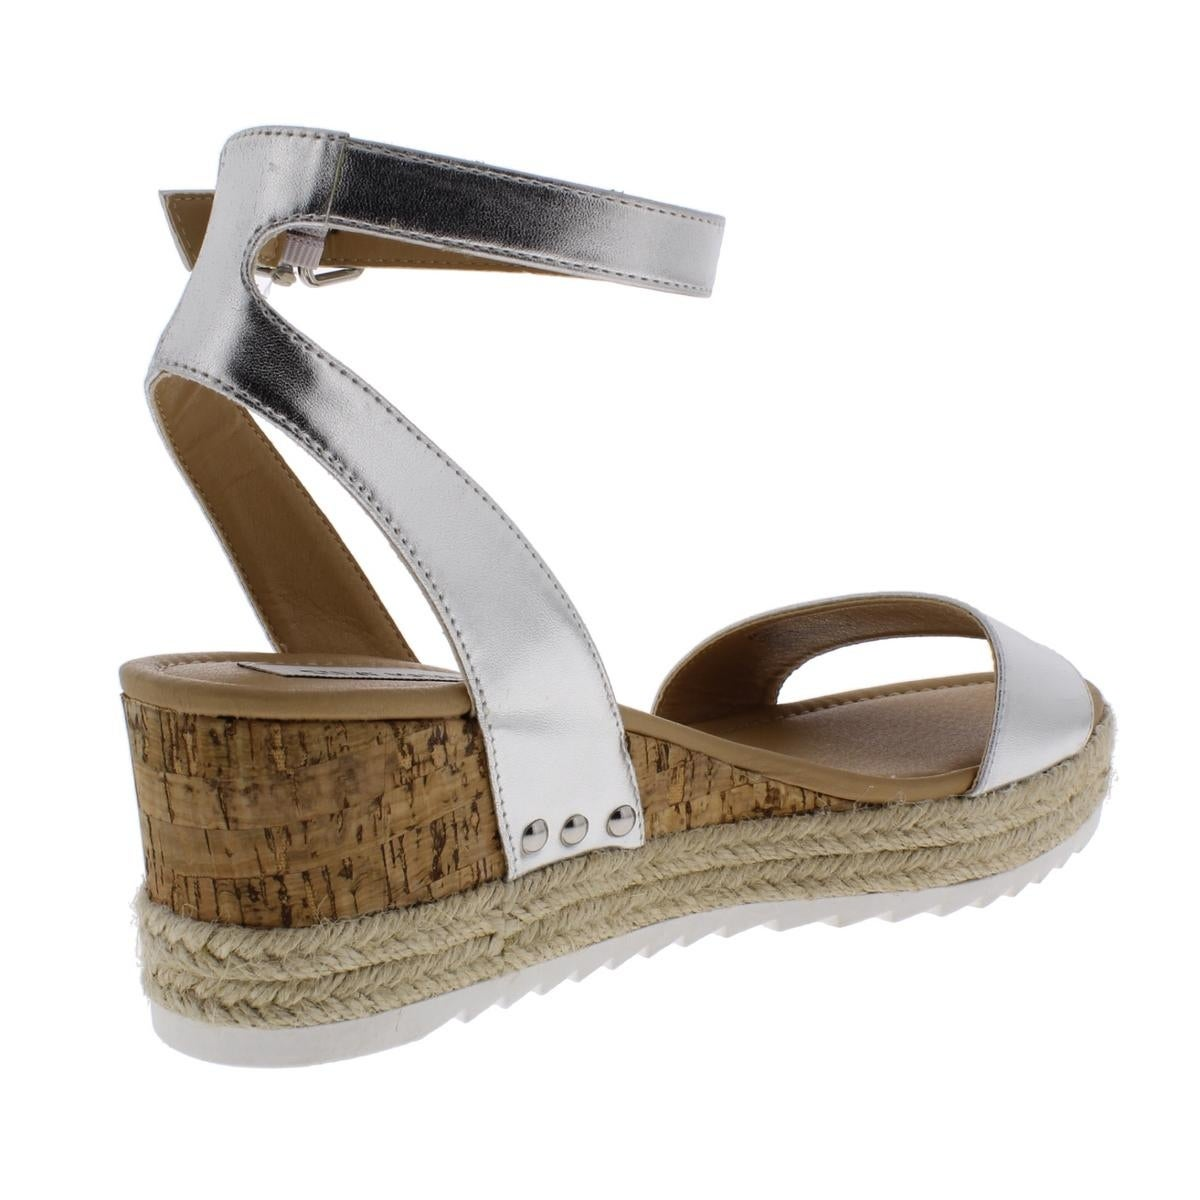 8091be626b1 Steve Madden Womens Jaide Espadrilles Leather Wedges